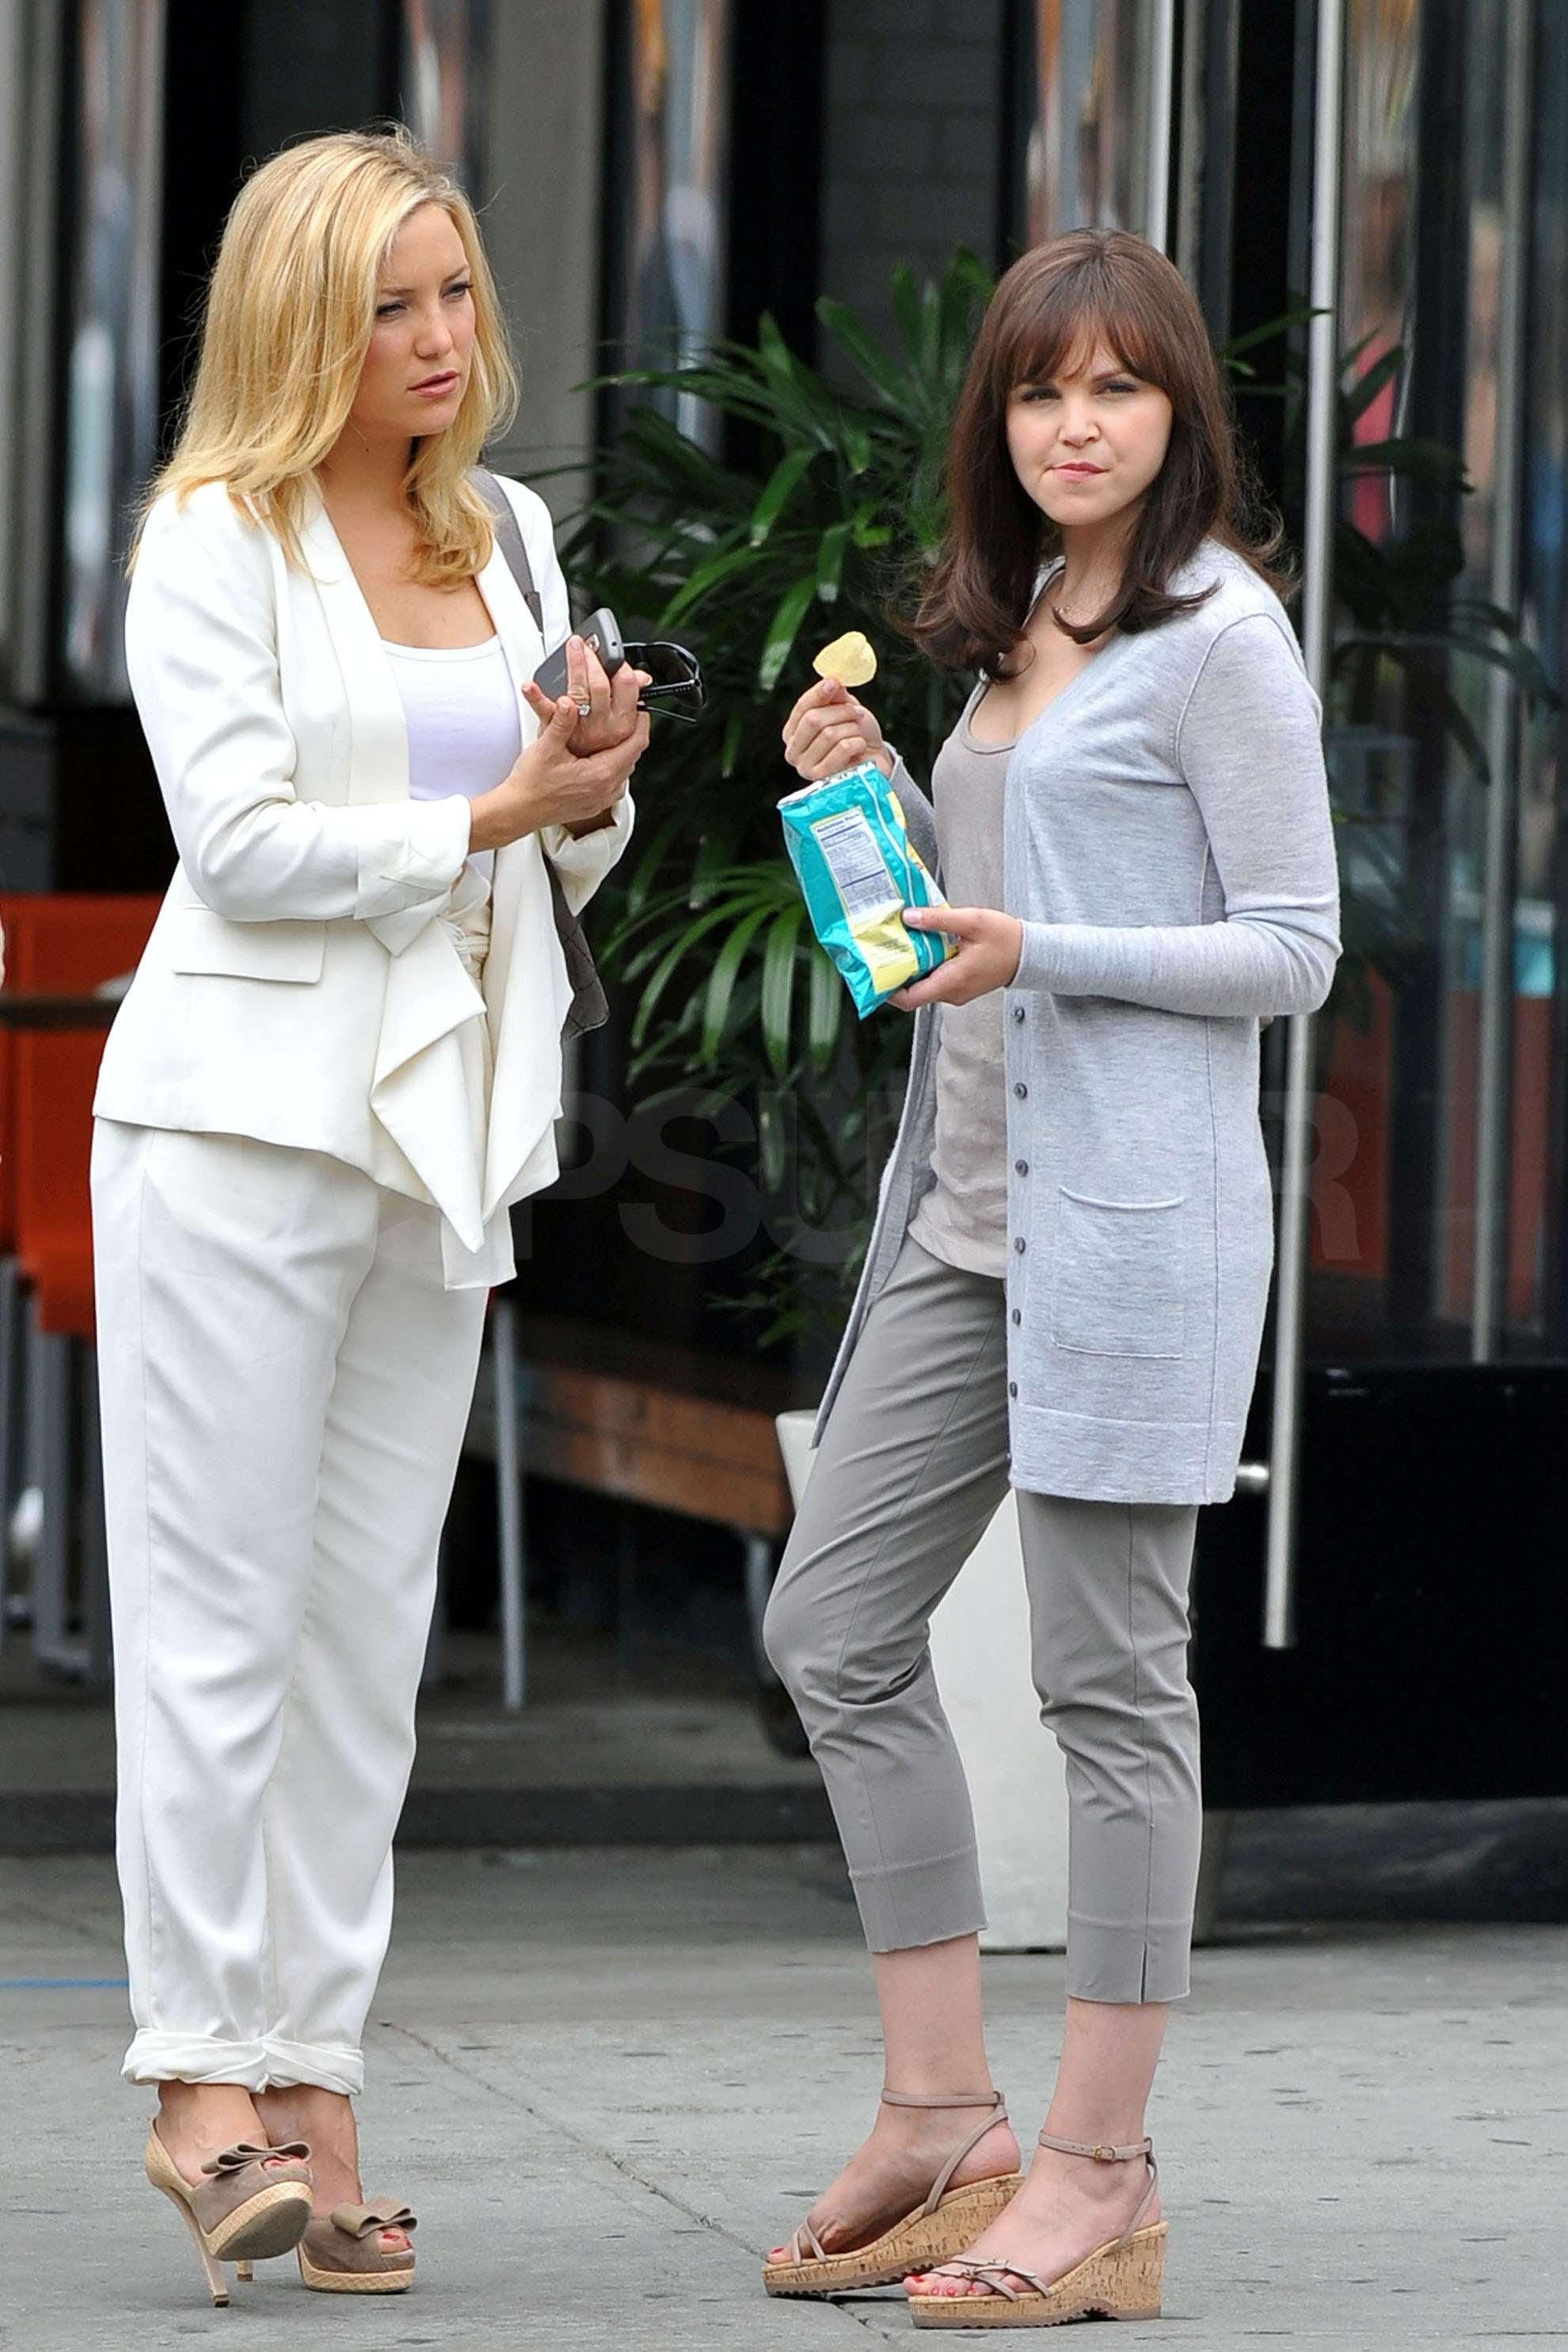 pictures of kate hudson and ginnifer goodwin on the set of